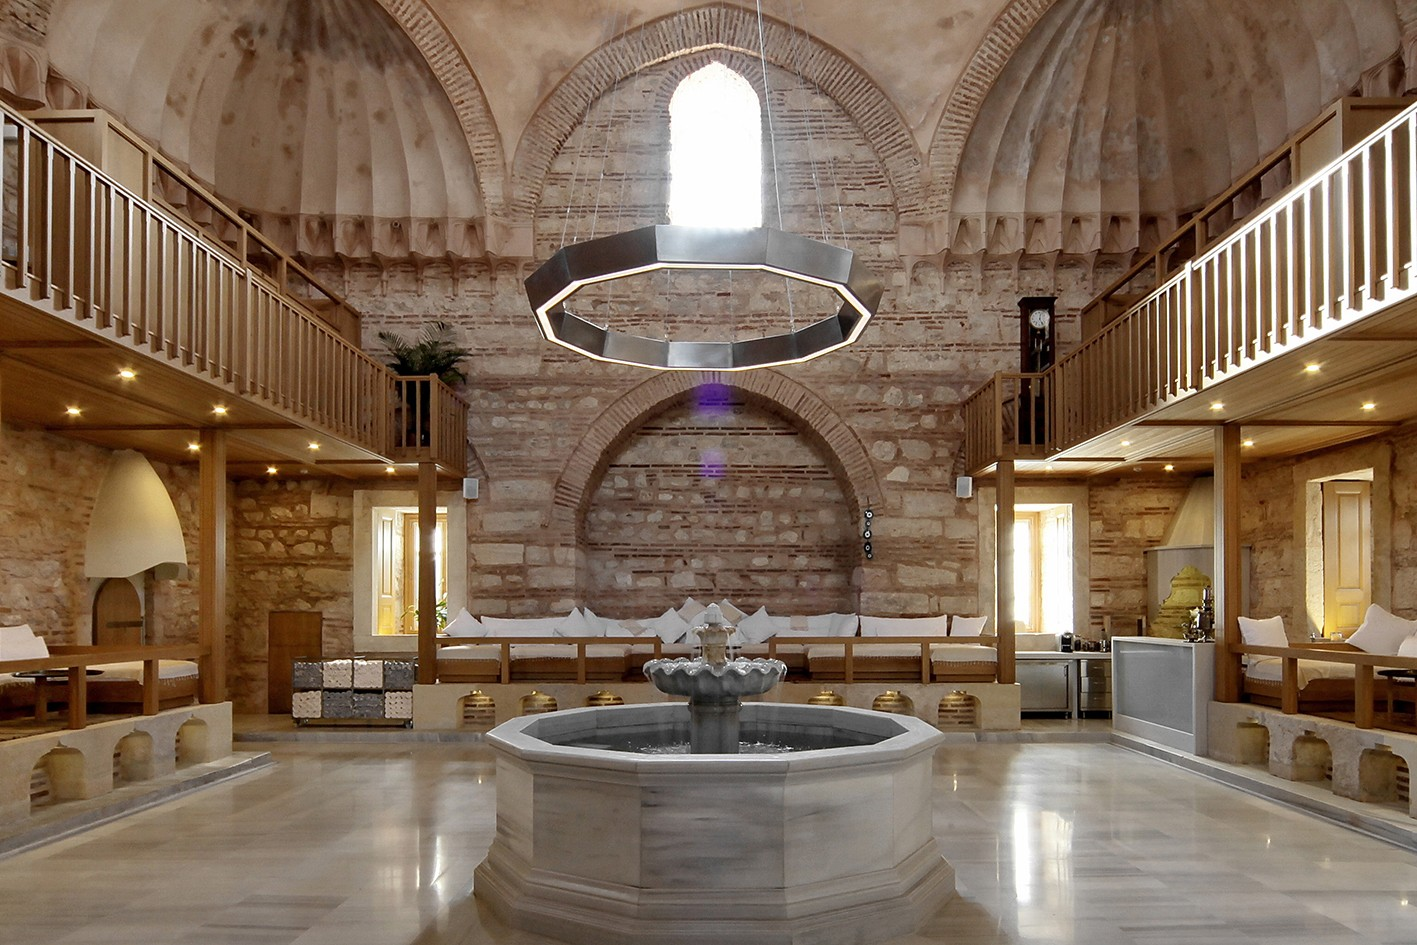 Unique Turkish hammam experience